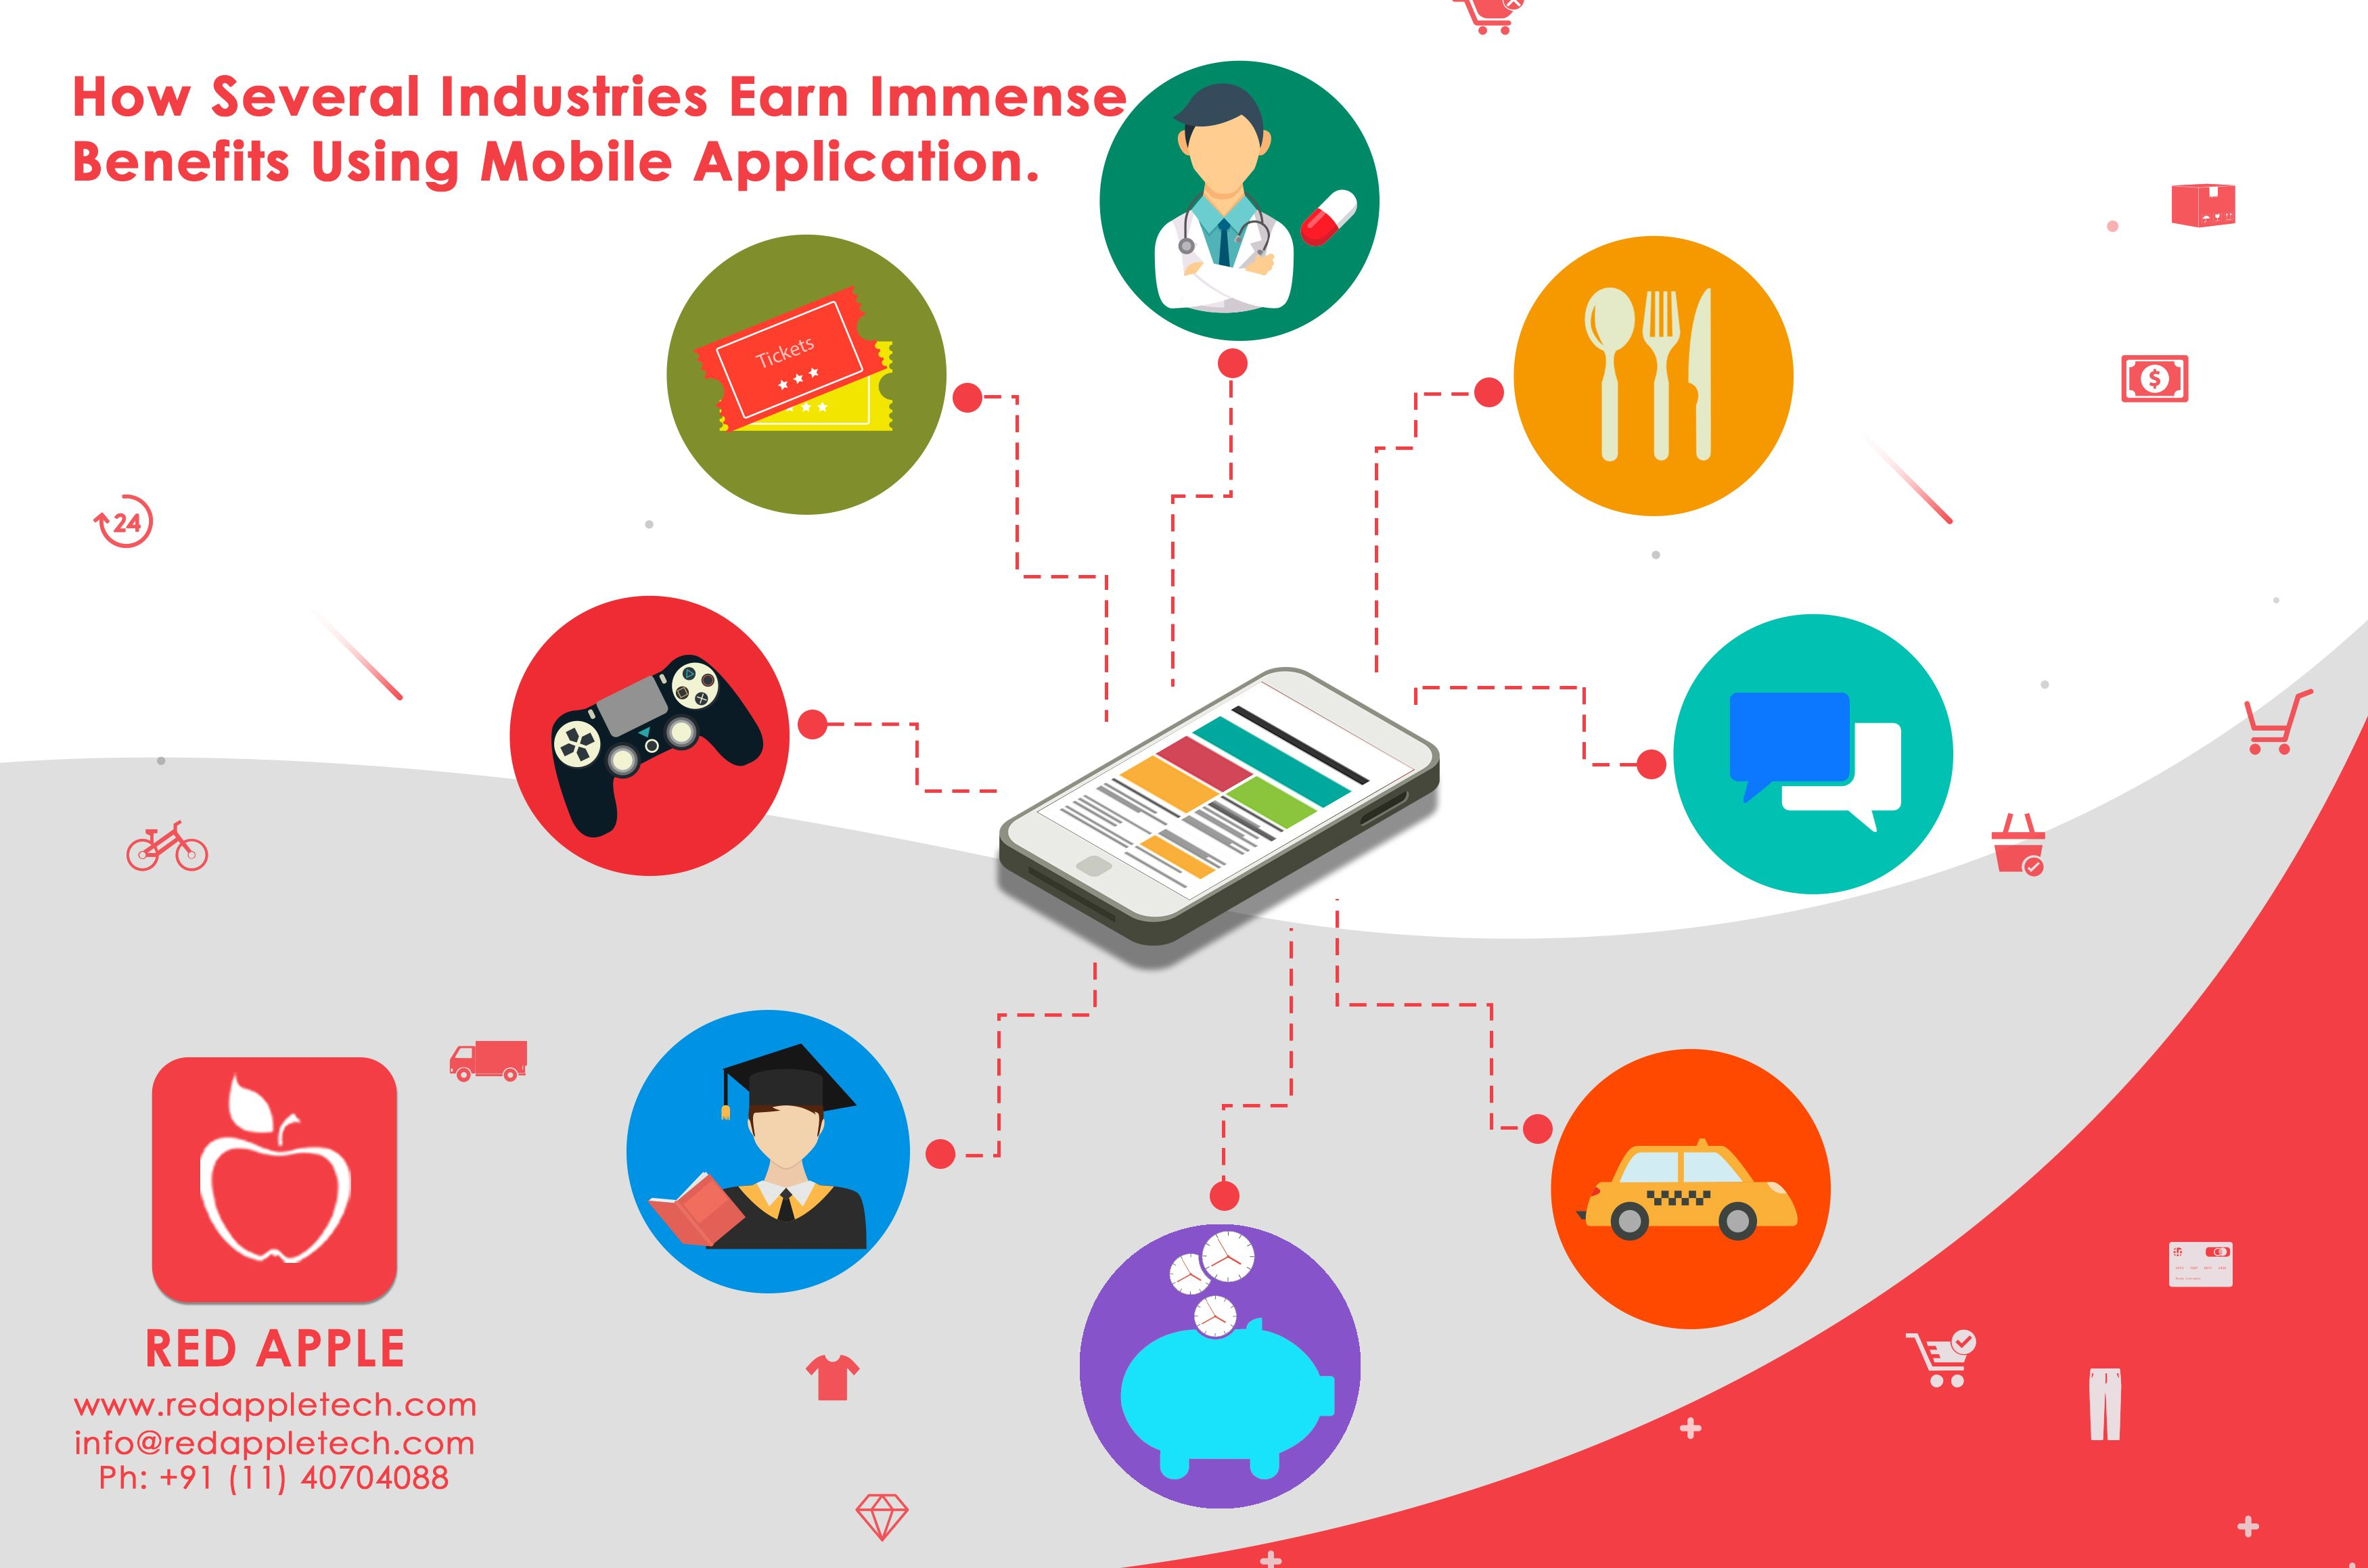 How Several Industries Earn Immense Benefits Using Mobile